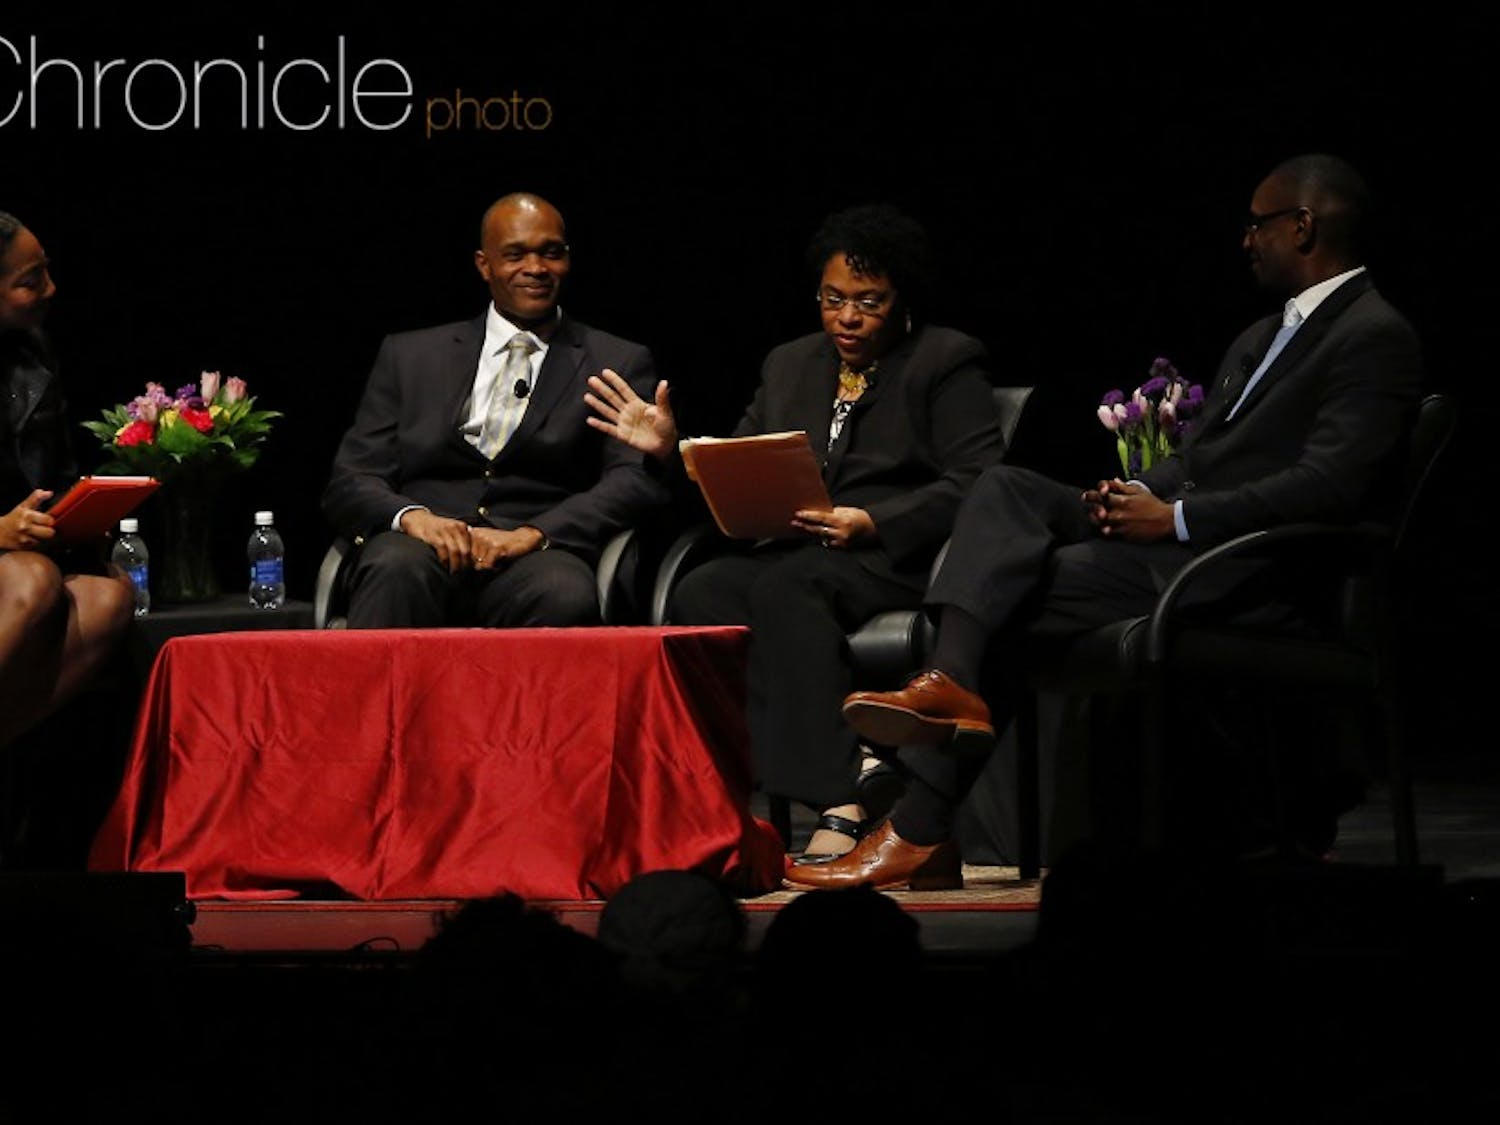 The widow of the Rev. Clementa Pinckney was part of a panel discussion focused on faith and race Tuesday at Page Auditorium.